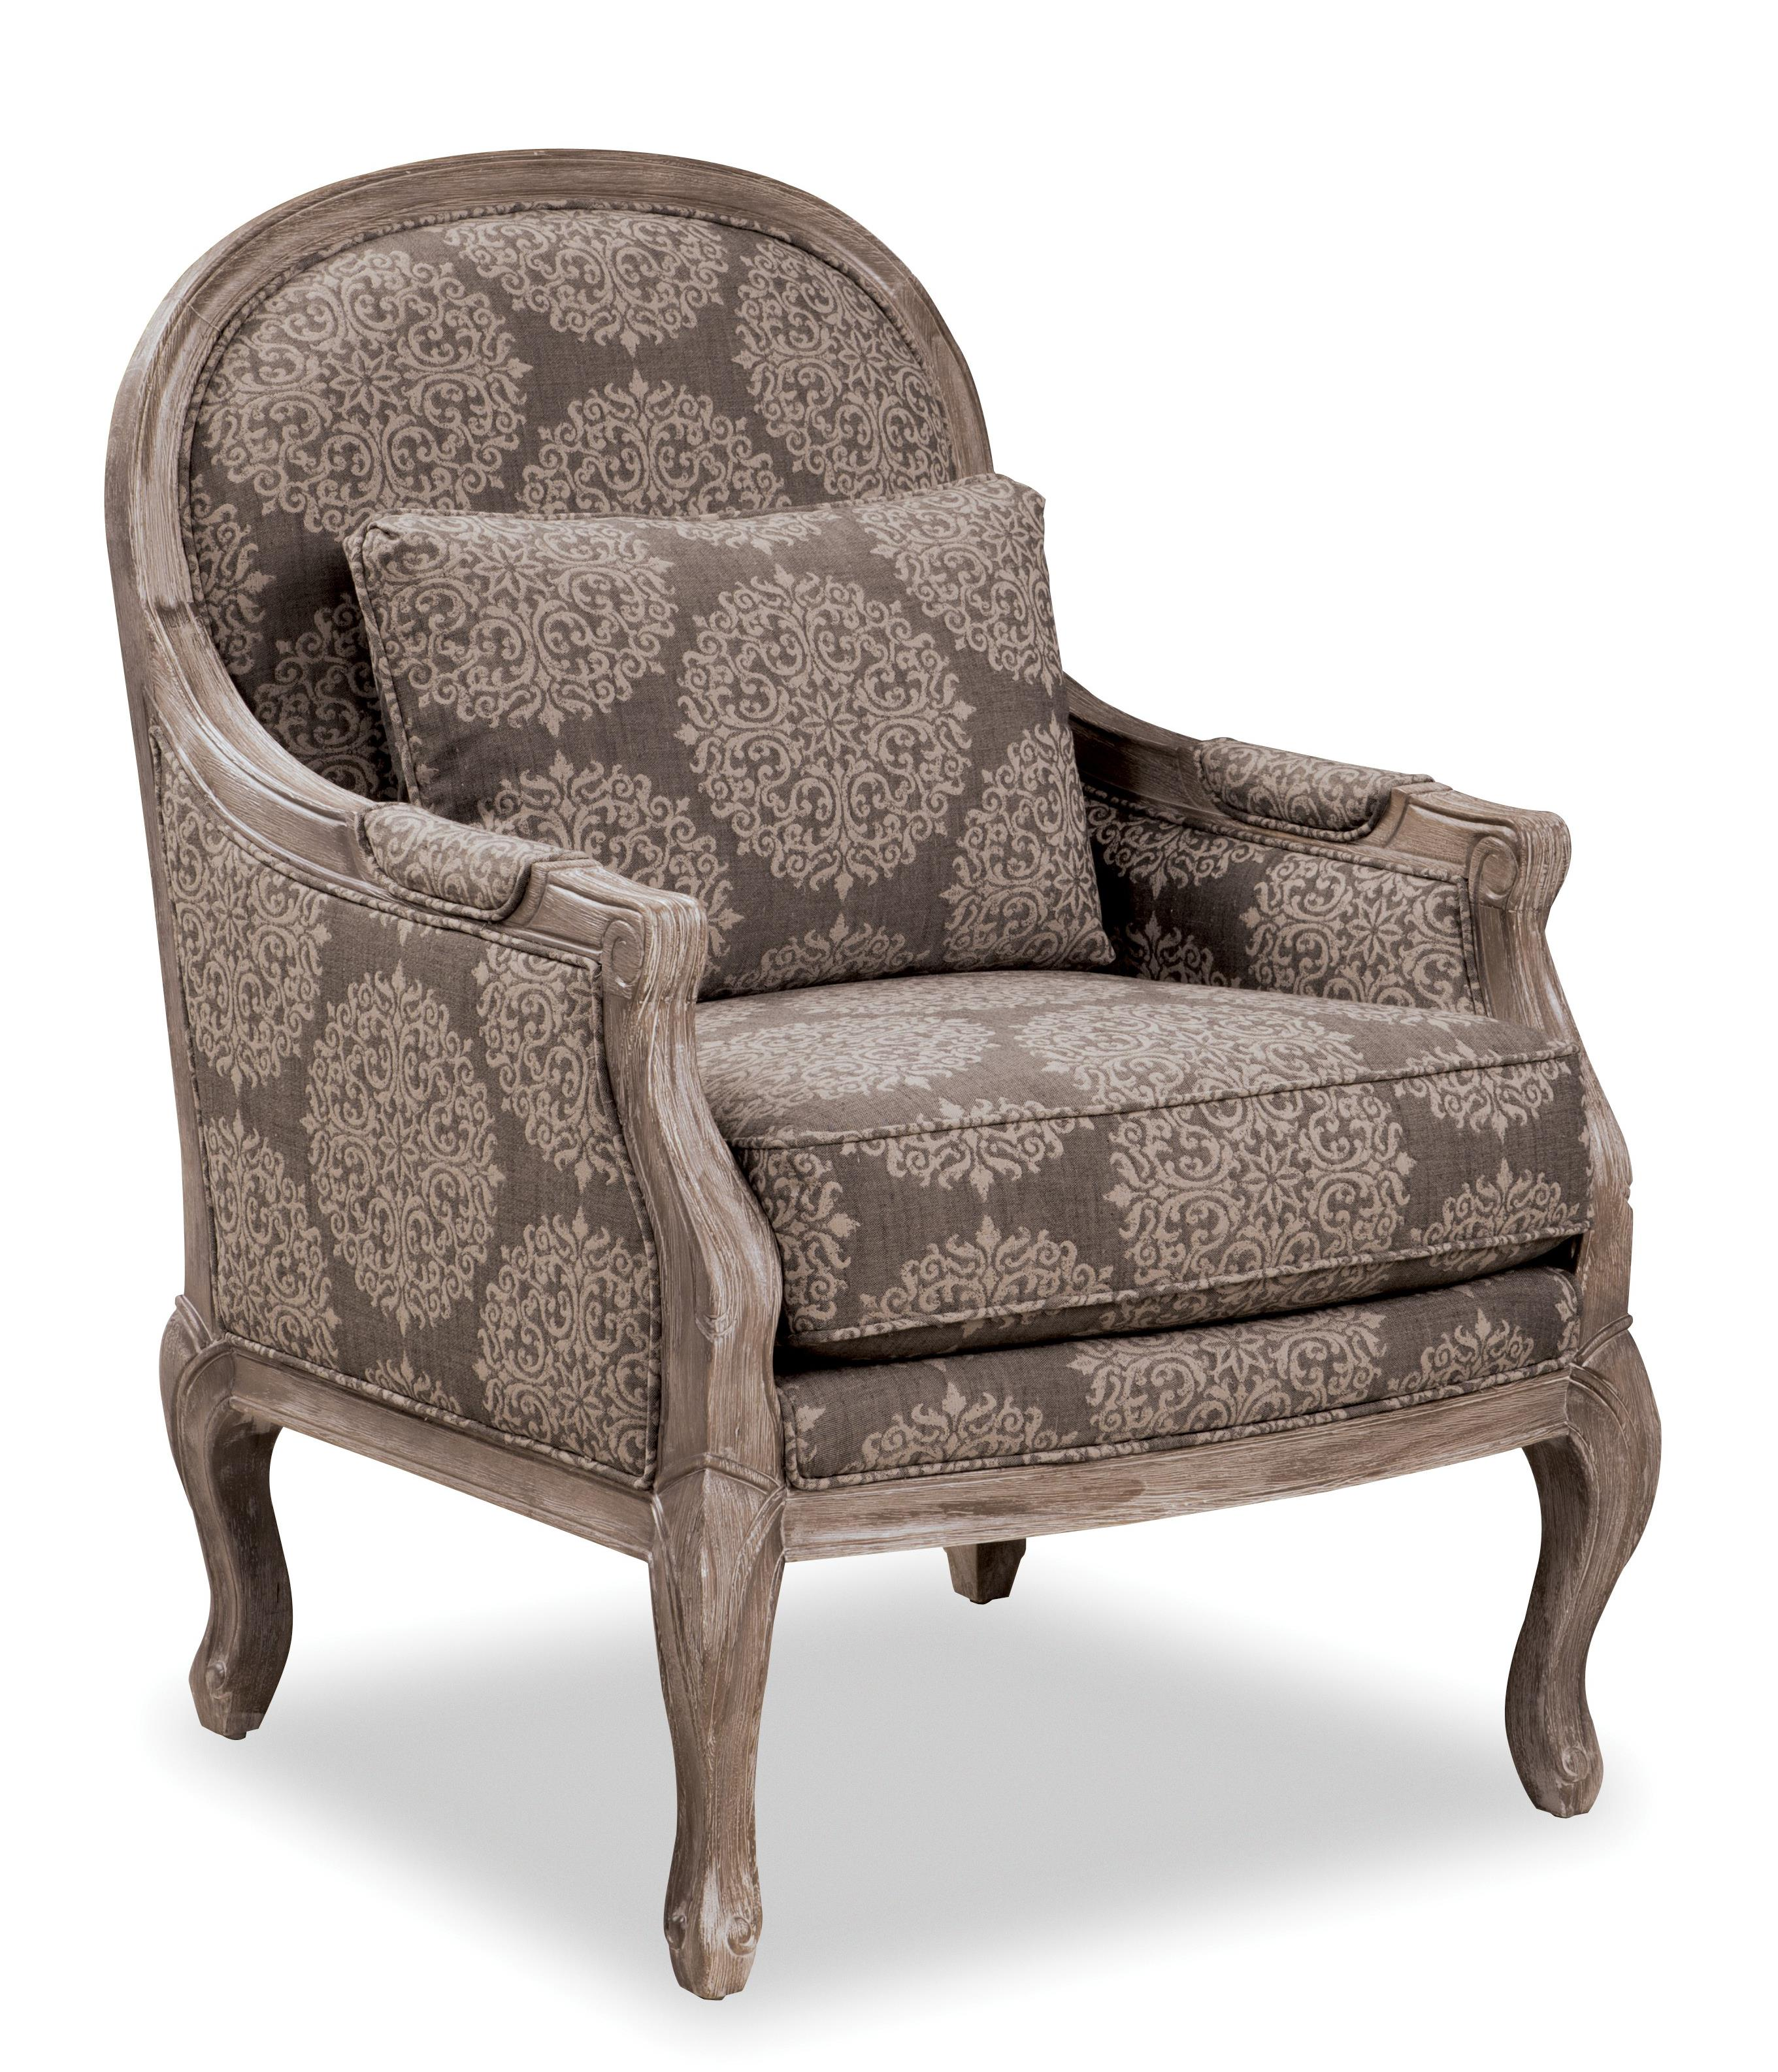 Traditional chair with cabriole legs and exposed wood for Traditional sofas with legs